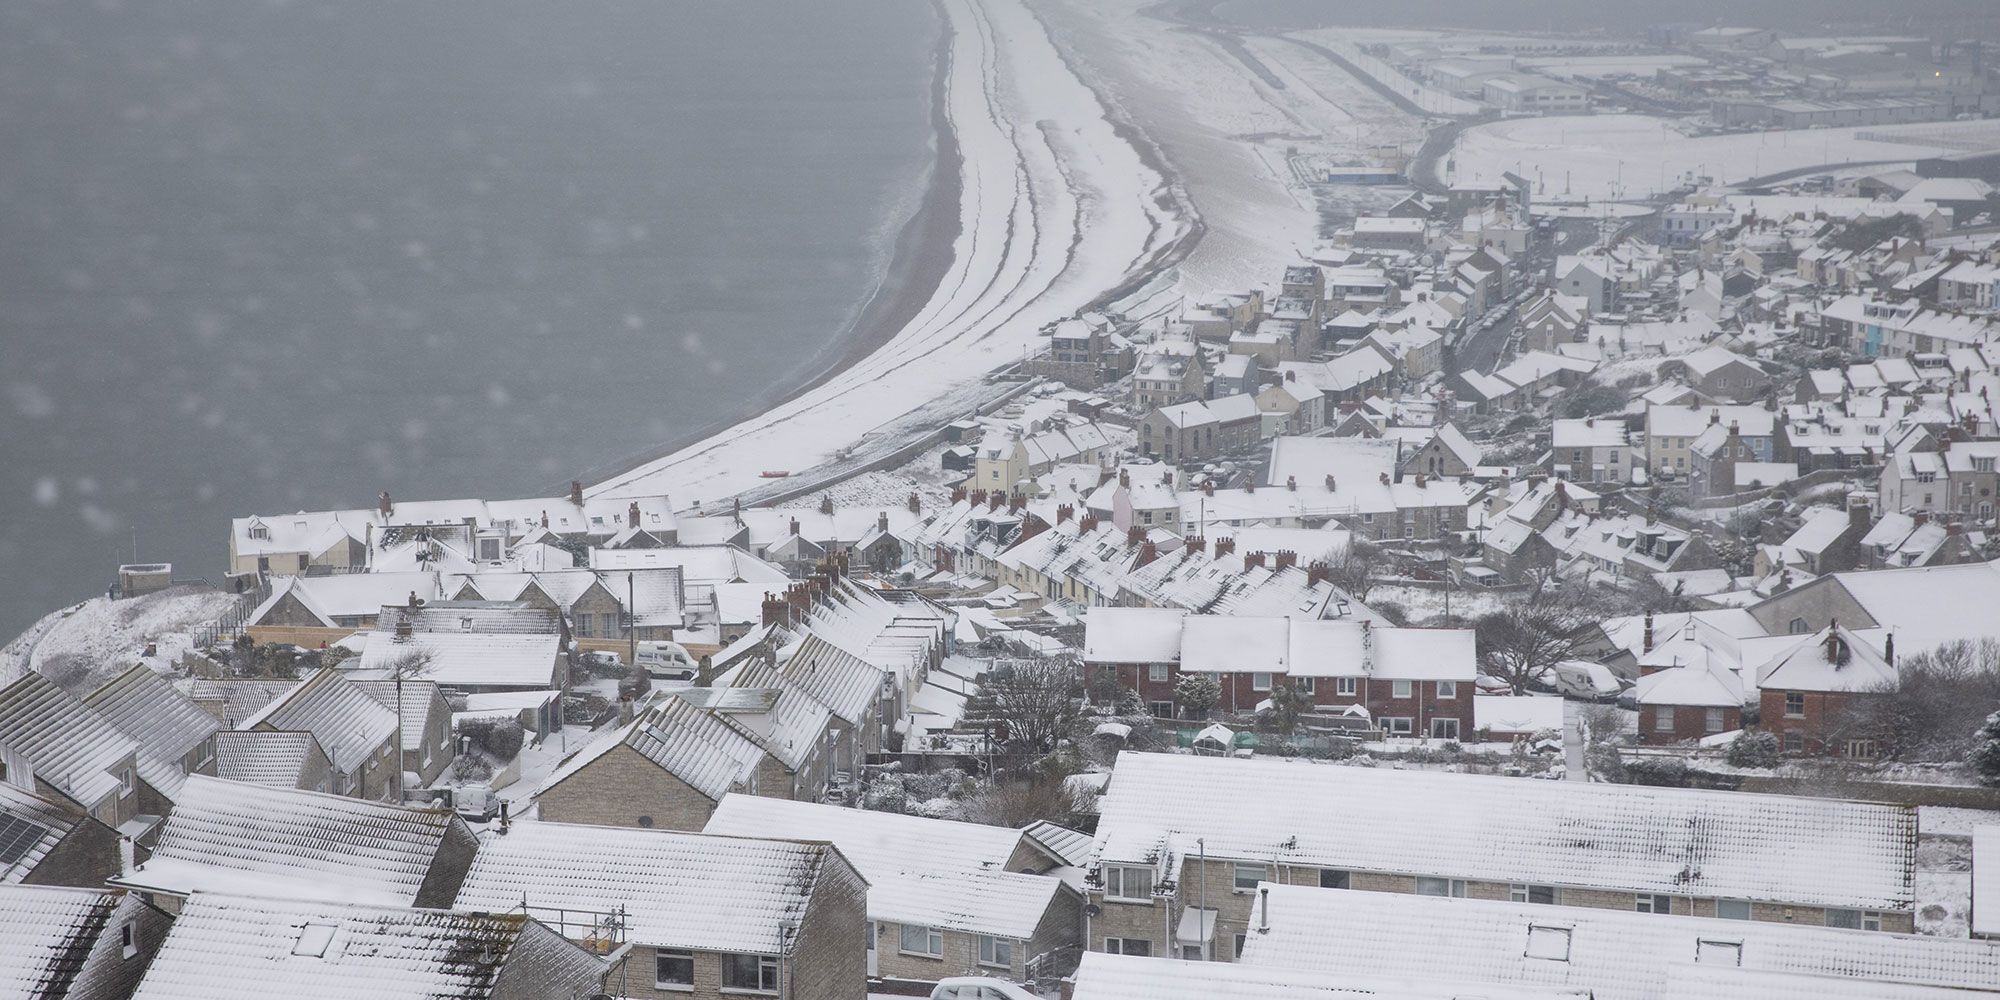 Weather experts predict it could snow again over Easter weekend